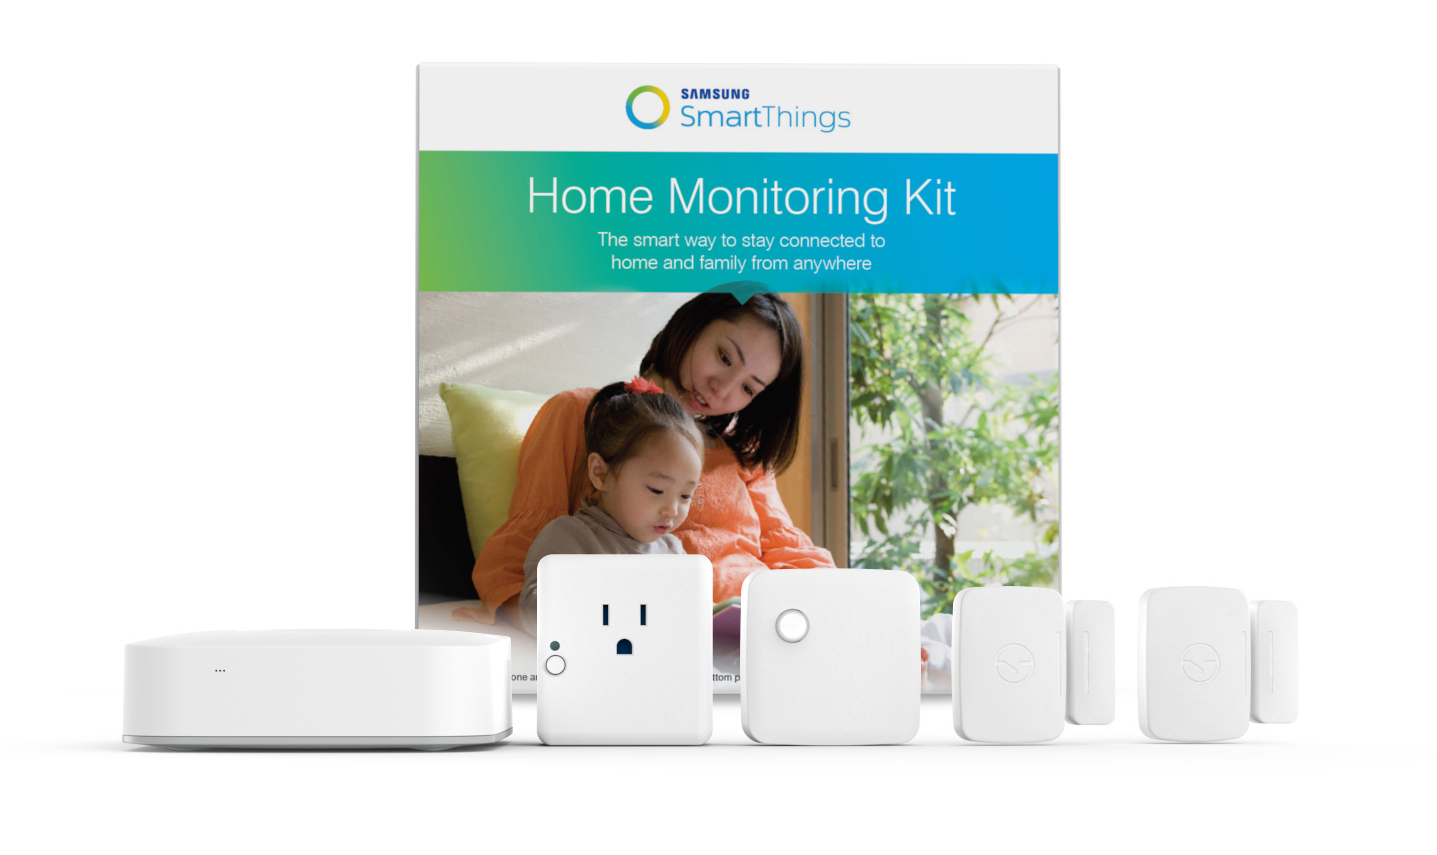 Samsung SmartThings Home Monitoring Kit Debuts, Serving as a